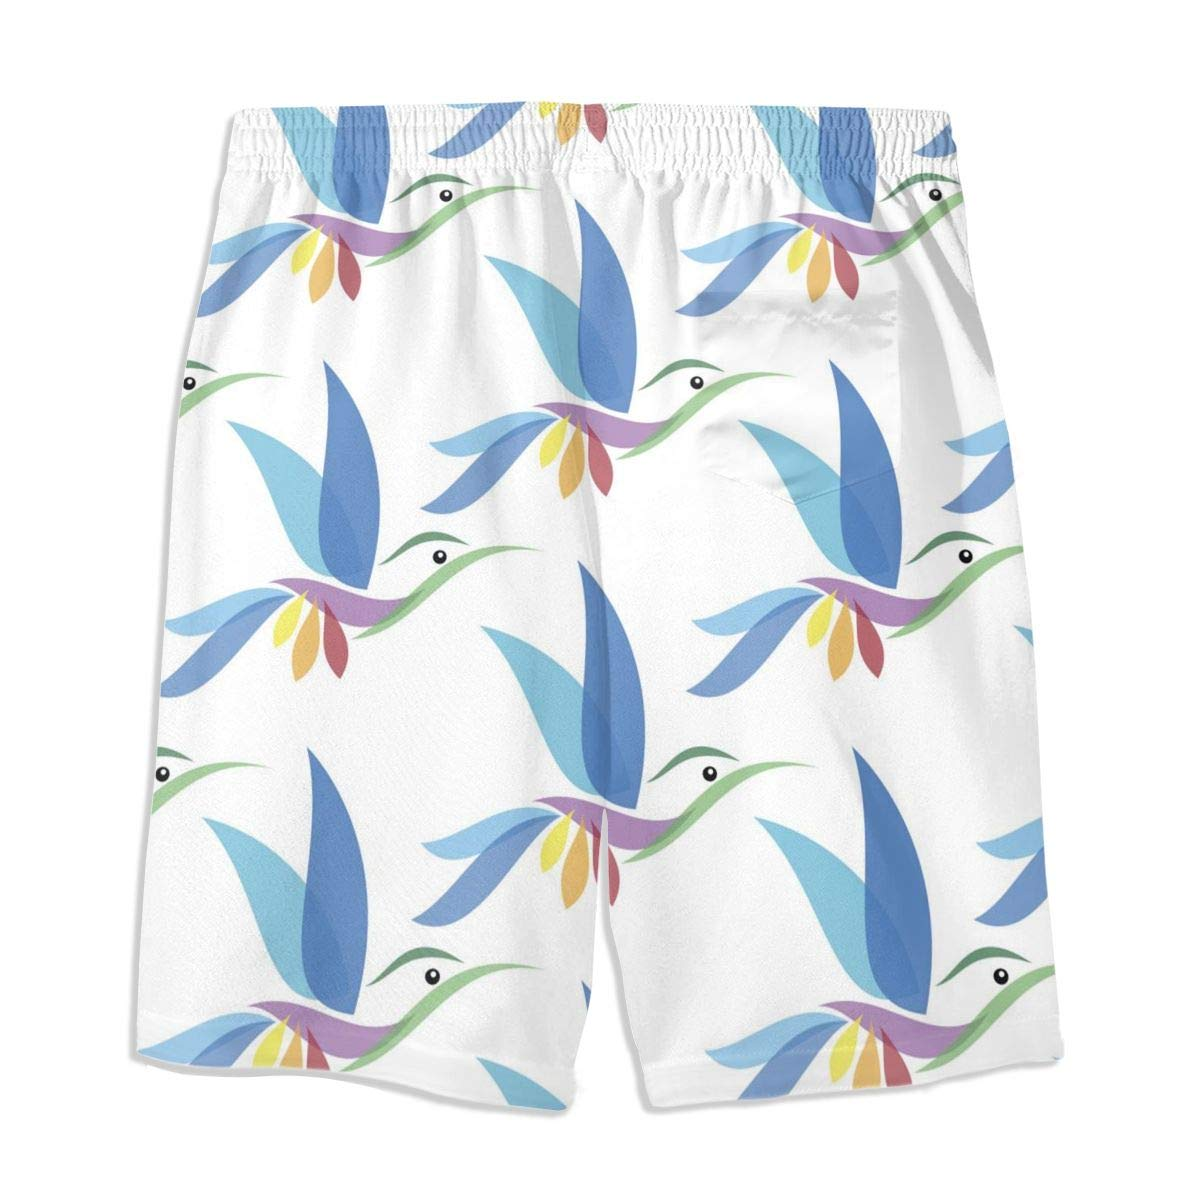 Mens Swim Trunks Blue Hummingbird Printed Beach Board Shorts with Pockets Cool Novelty Bathing Suits for Teen Boys